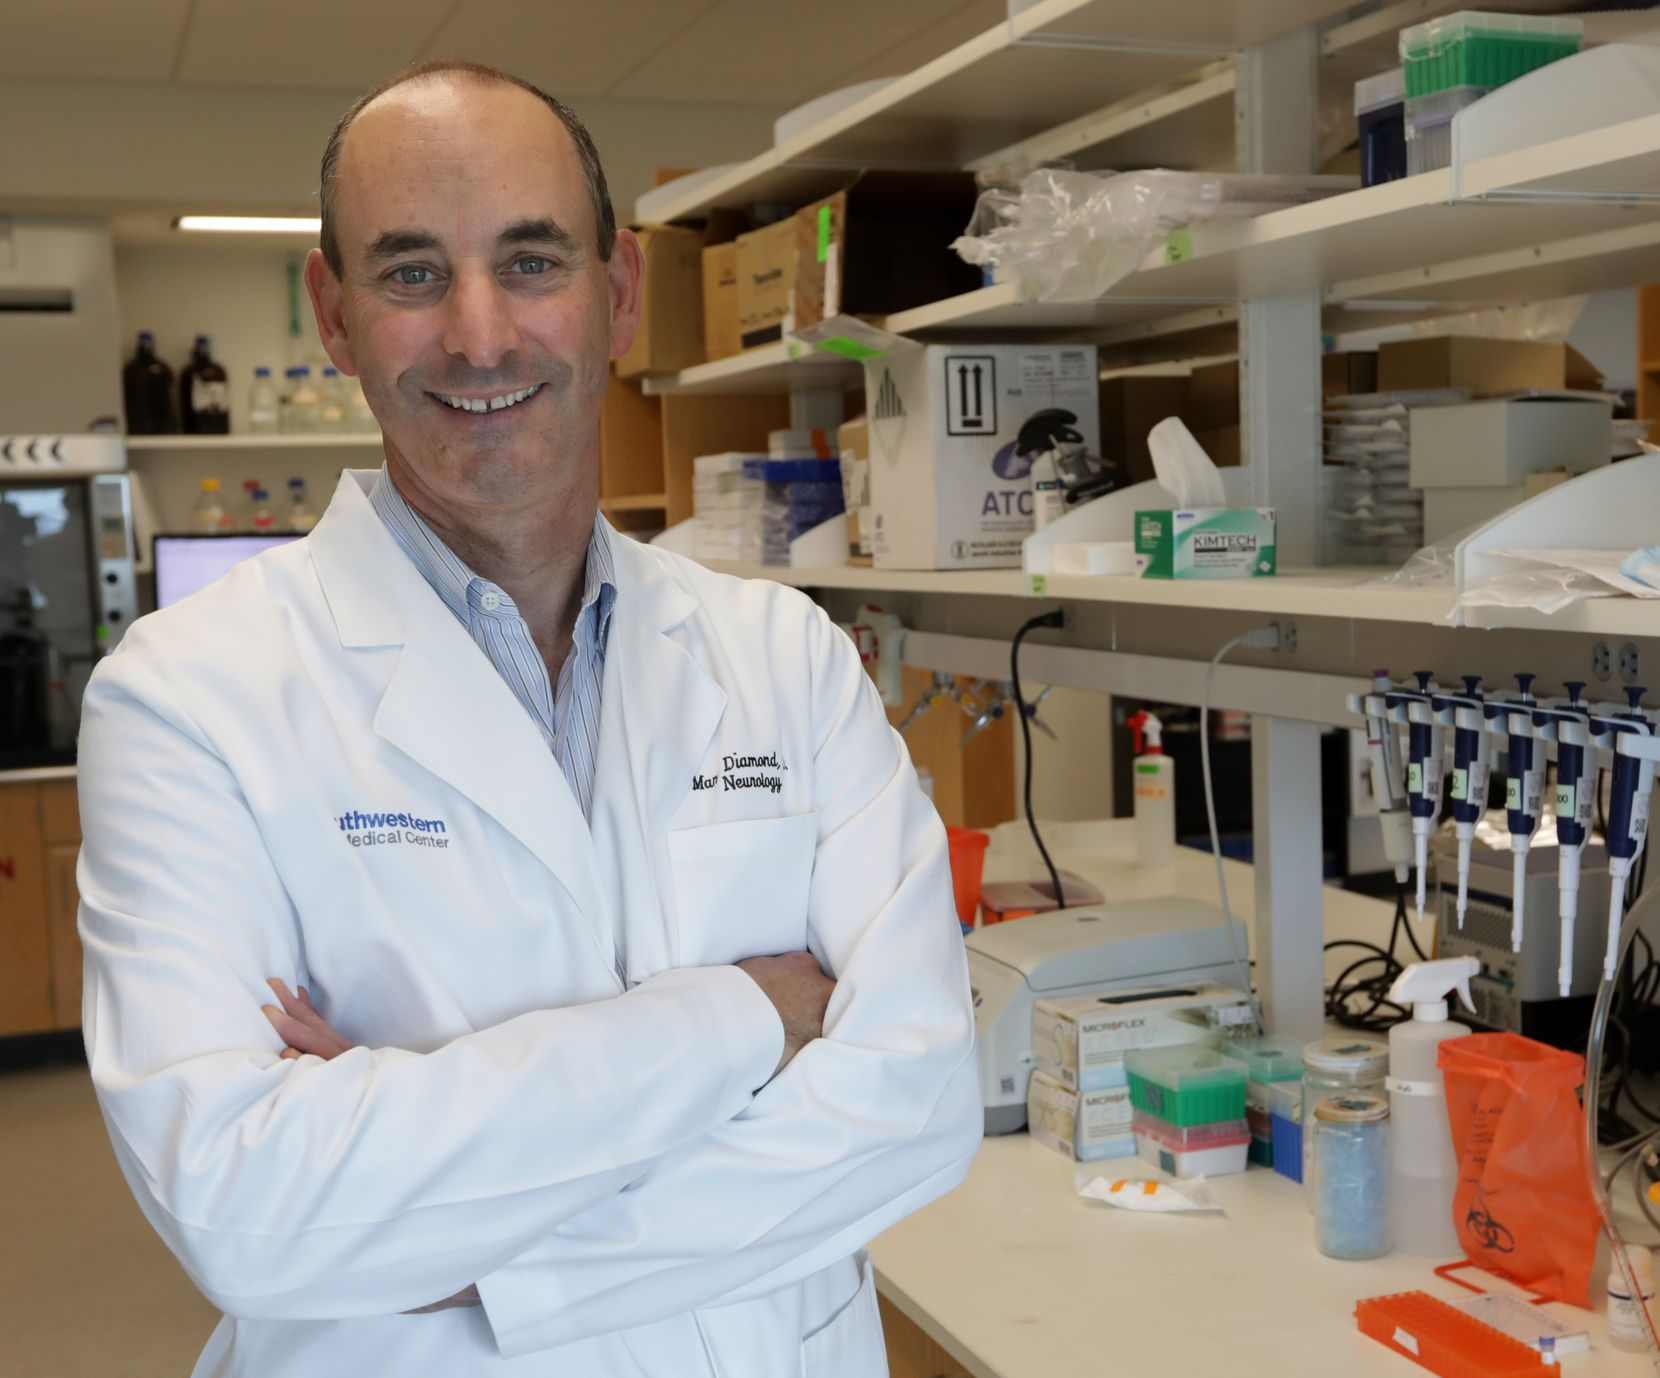 Dr. Marc Diamond of UT Southwestern Medical Center said he disagrees with federal regulators' decision to approve the new Alzheimer's drug aducanumab.